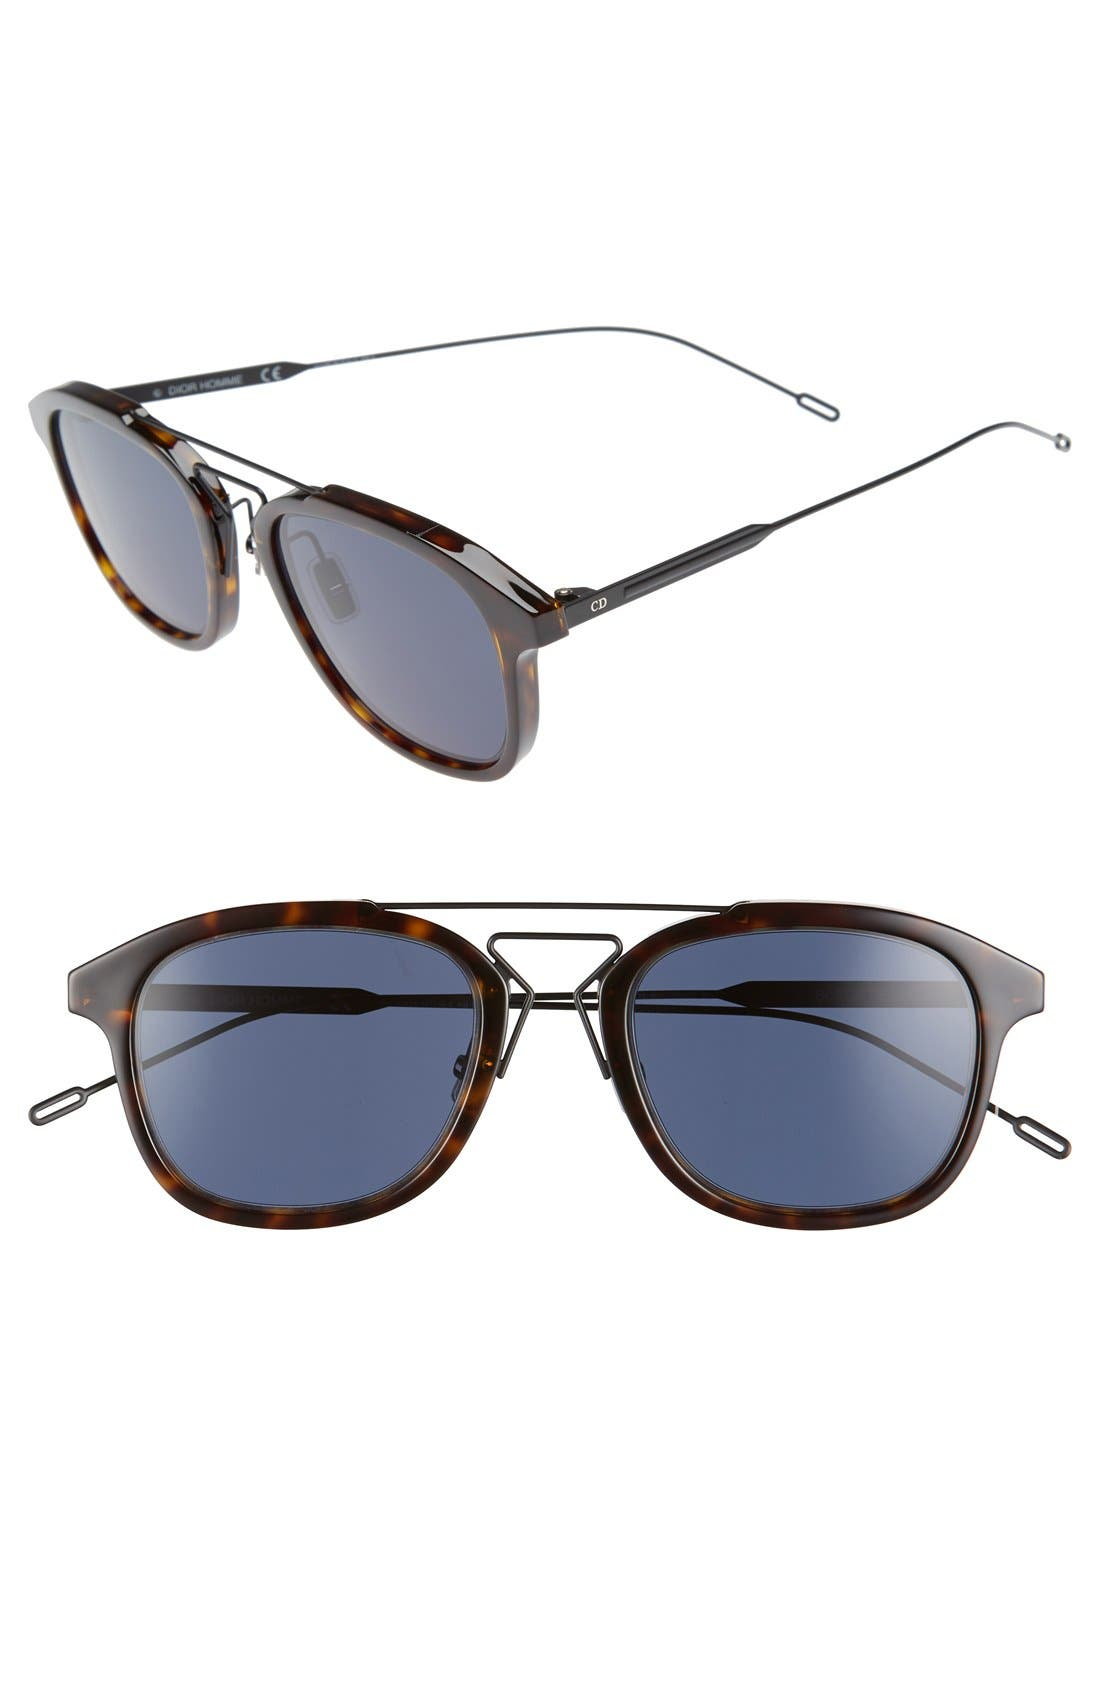 DIOR HOMME Black Tie 51mm Sunglasses